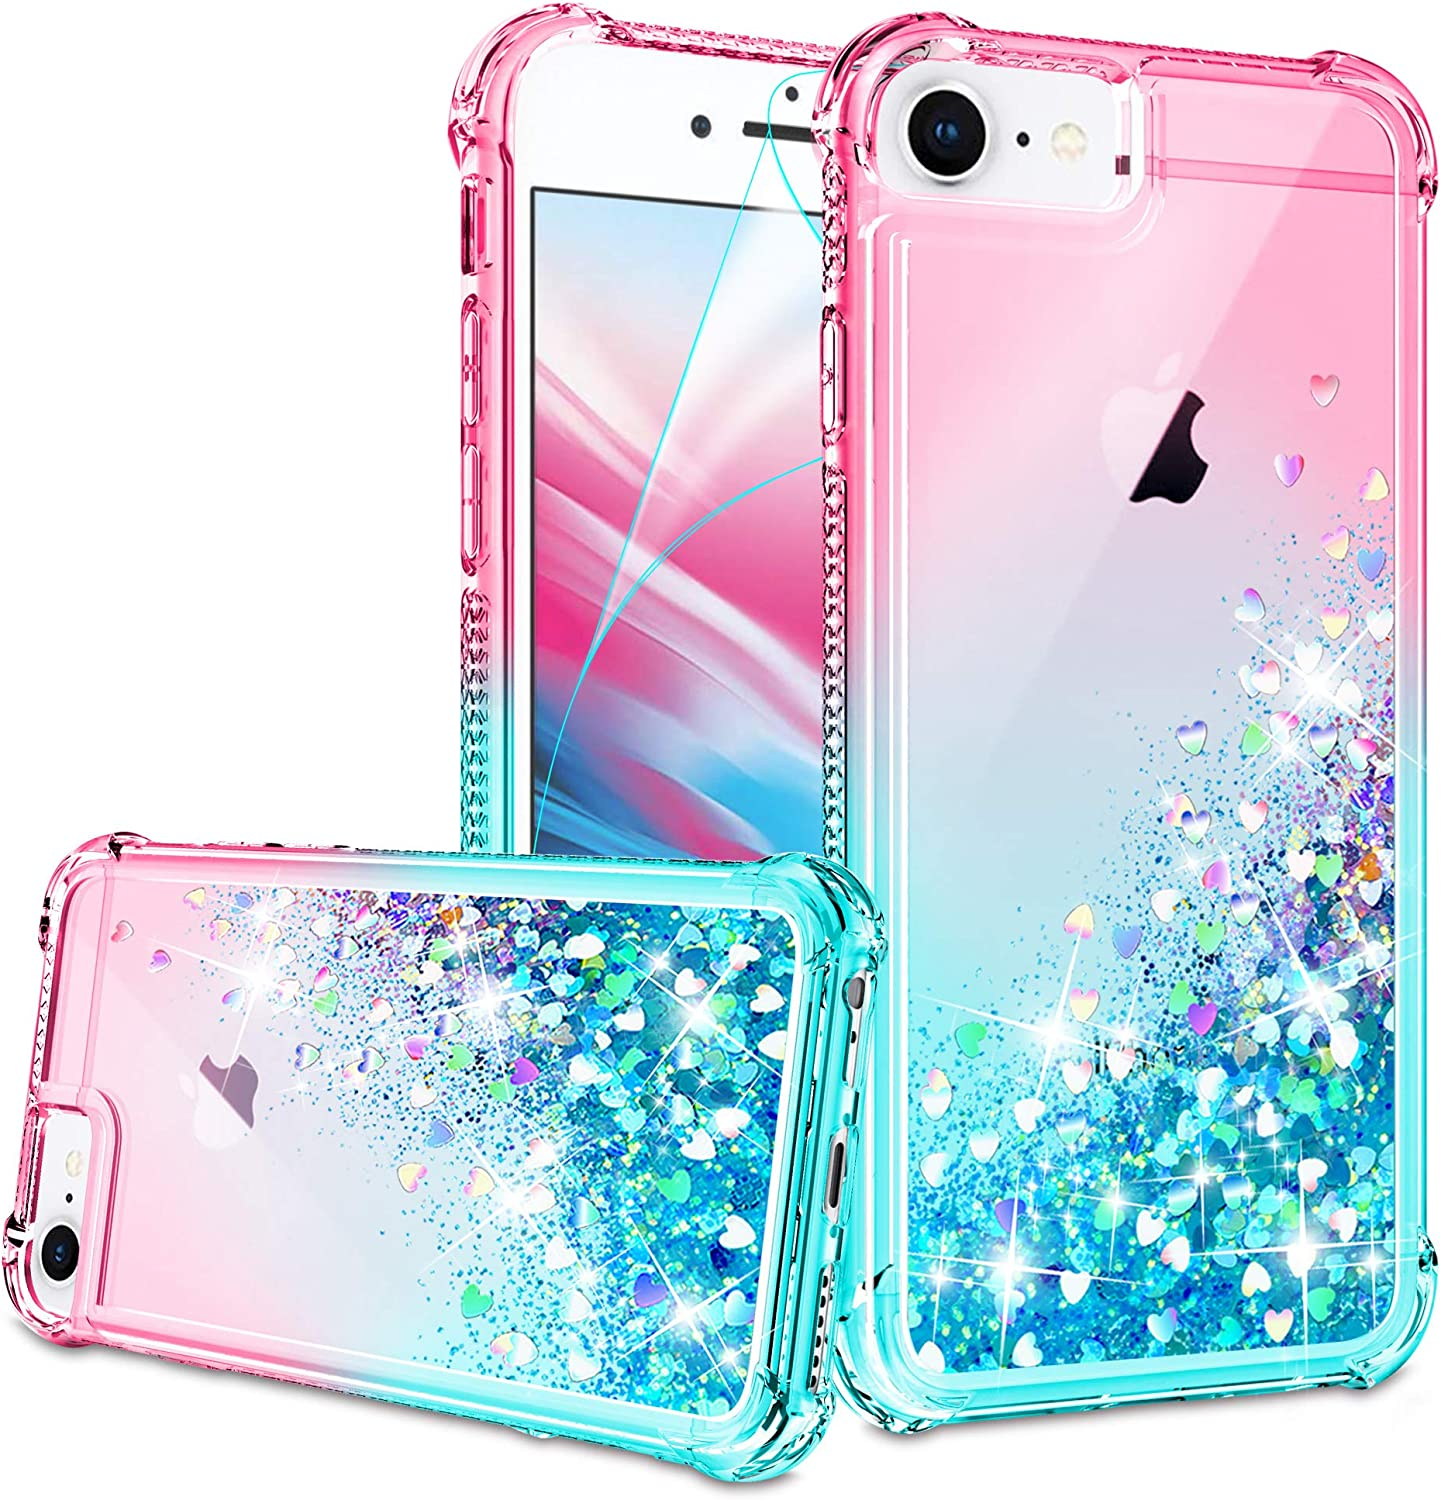 iPhone SE 2020 Case, iPhone 6/6S/7/8 Case with HD Screen Protector for Girls Women, Gritup Cute Clear Gradient Glitter Liquid TPU Slim Phone Case for Apple iPhone SE 2020/6/6S/7/8 Pink/Teal